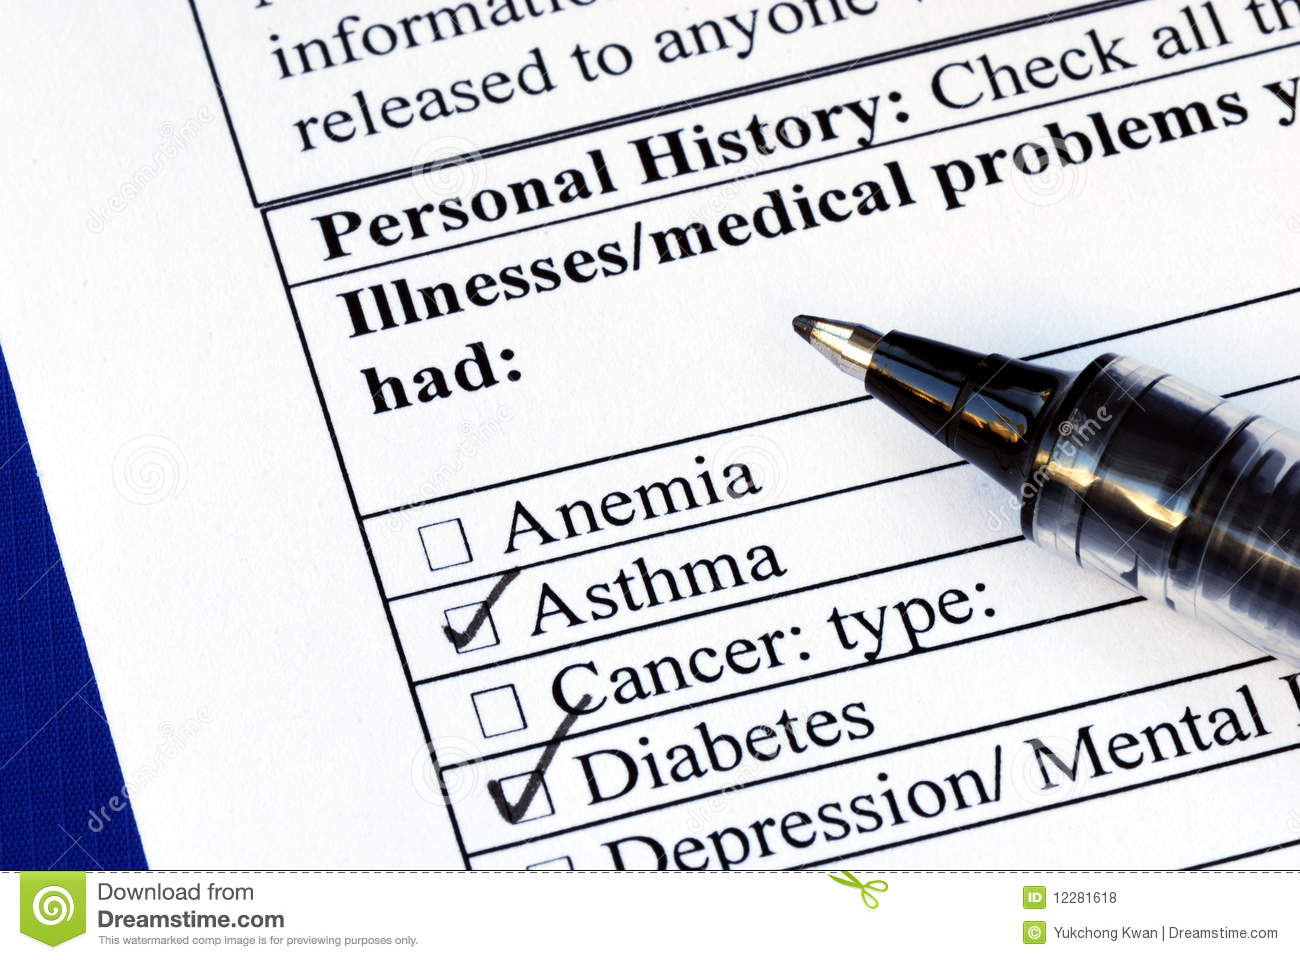 Patient selects the illness in the medical history